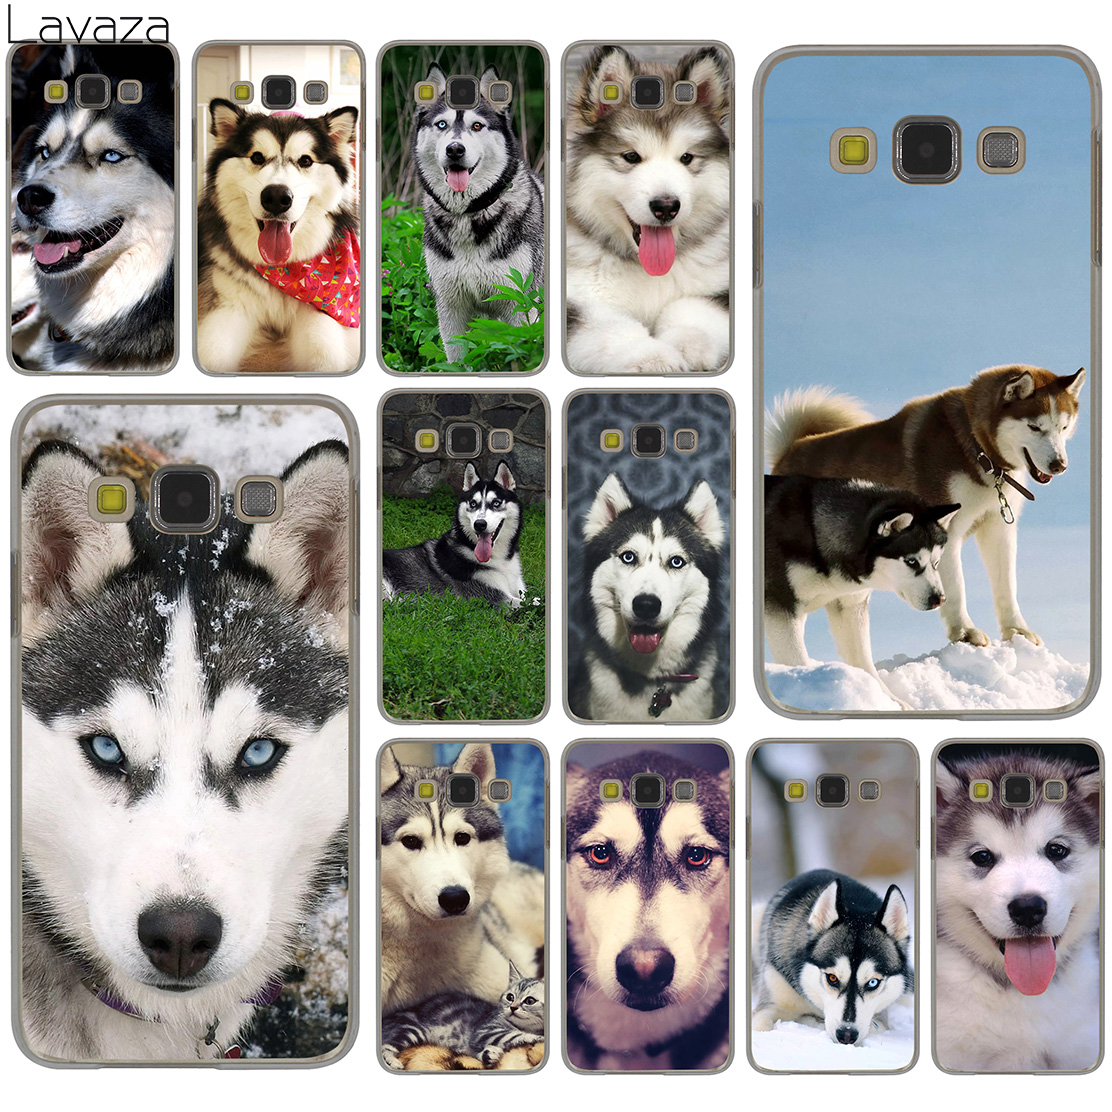 Lavaza Alaskan Malamute <font><b>Siberian</b></font> <font><b>husky</b></font> dog Hard Case for Samsung Galaxy S10 S10E S8 Plus S6 S7 Edge S9 Plus Phone Cover image